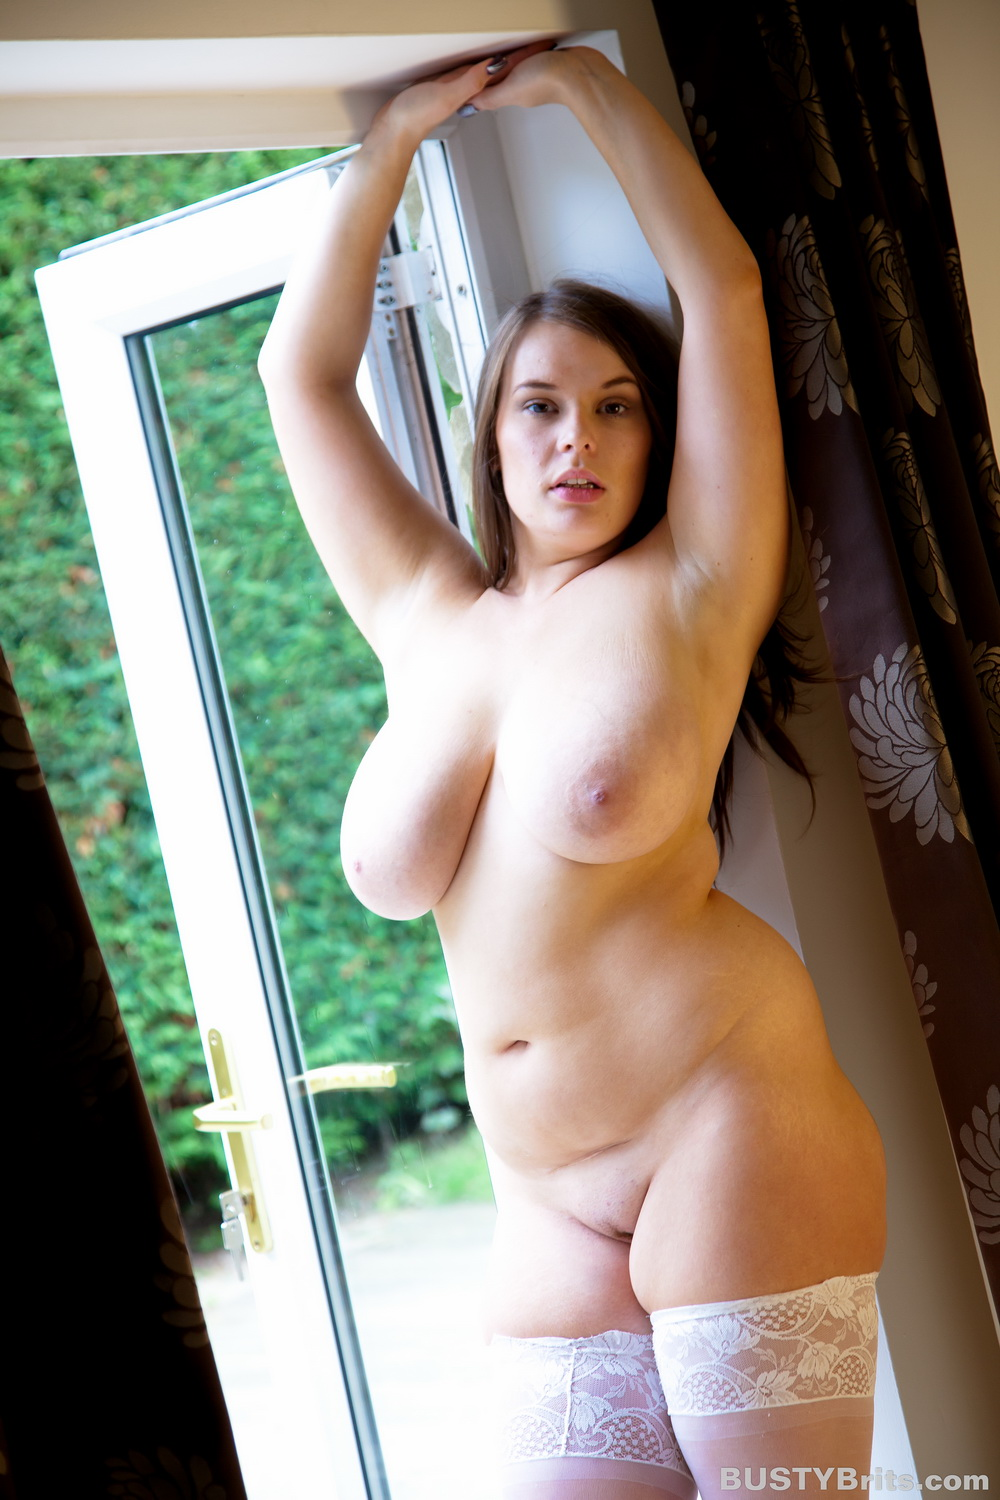 Regret, Busty brits naked boobs